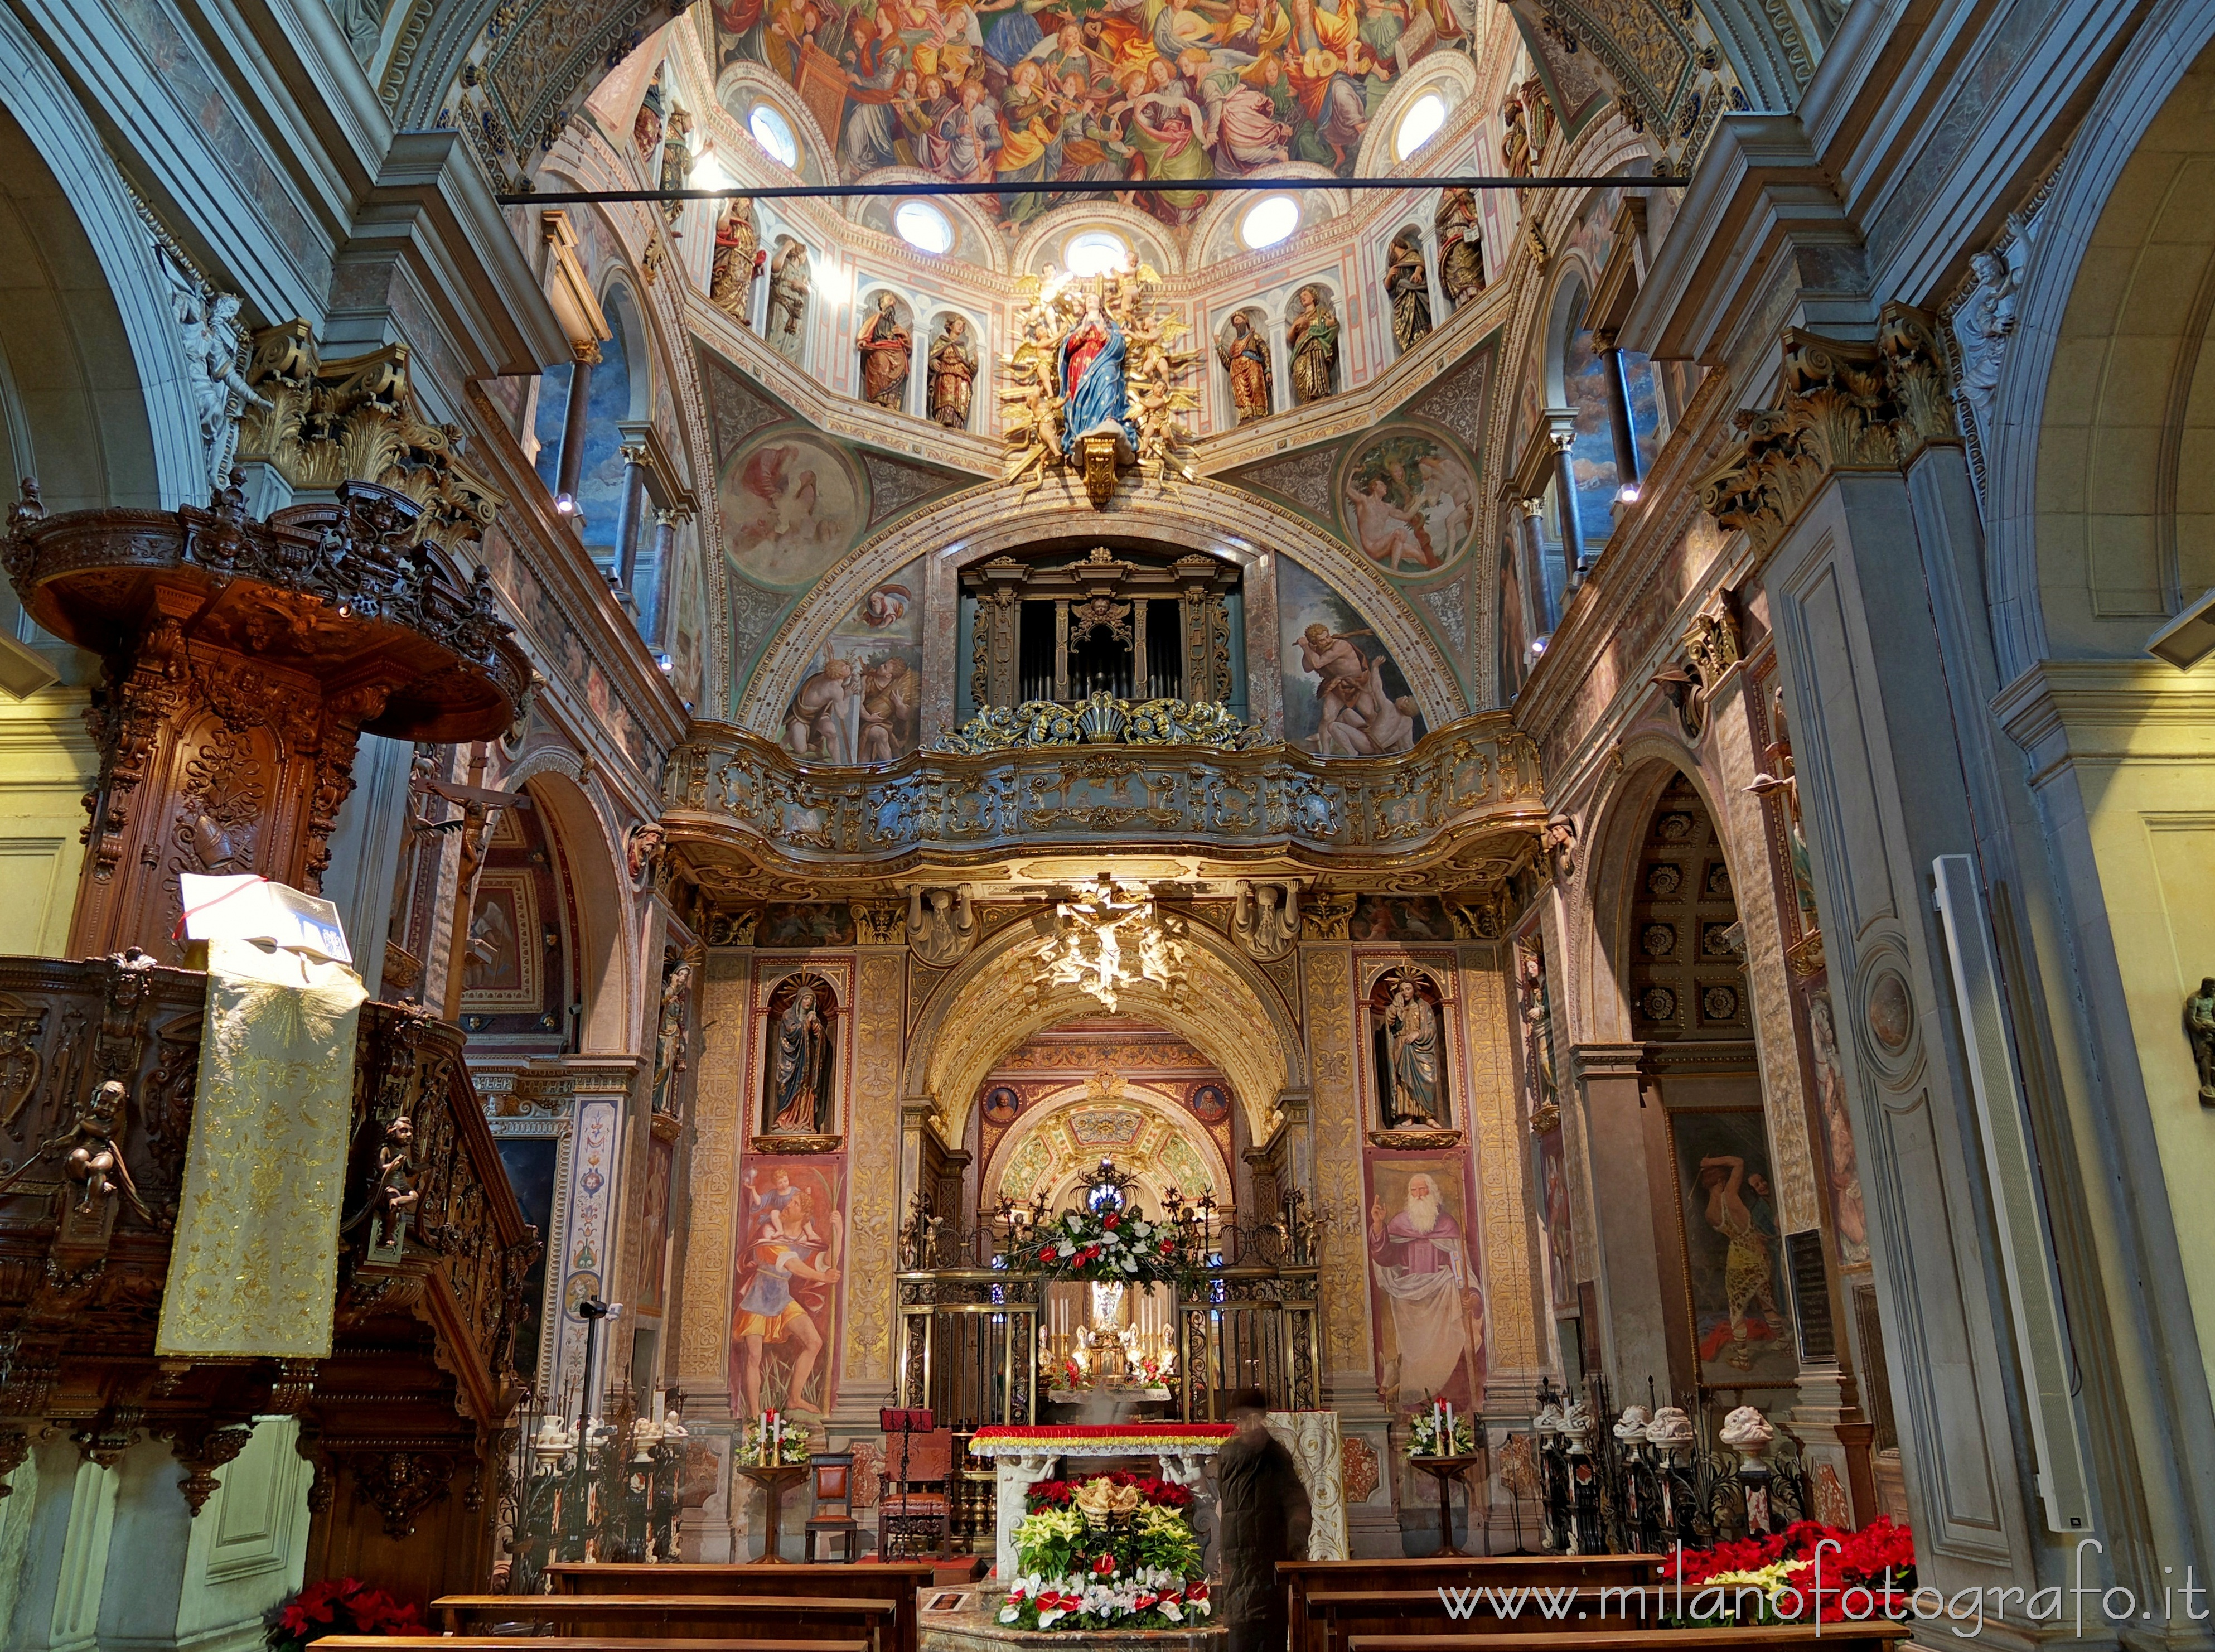 Saronno (Varese, Italy): Central body of the Sanctuary of the Blessed Virgin of the Miracles - Saronno (Varese, Italy)